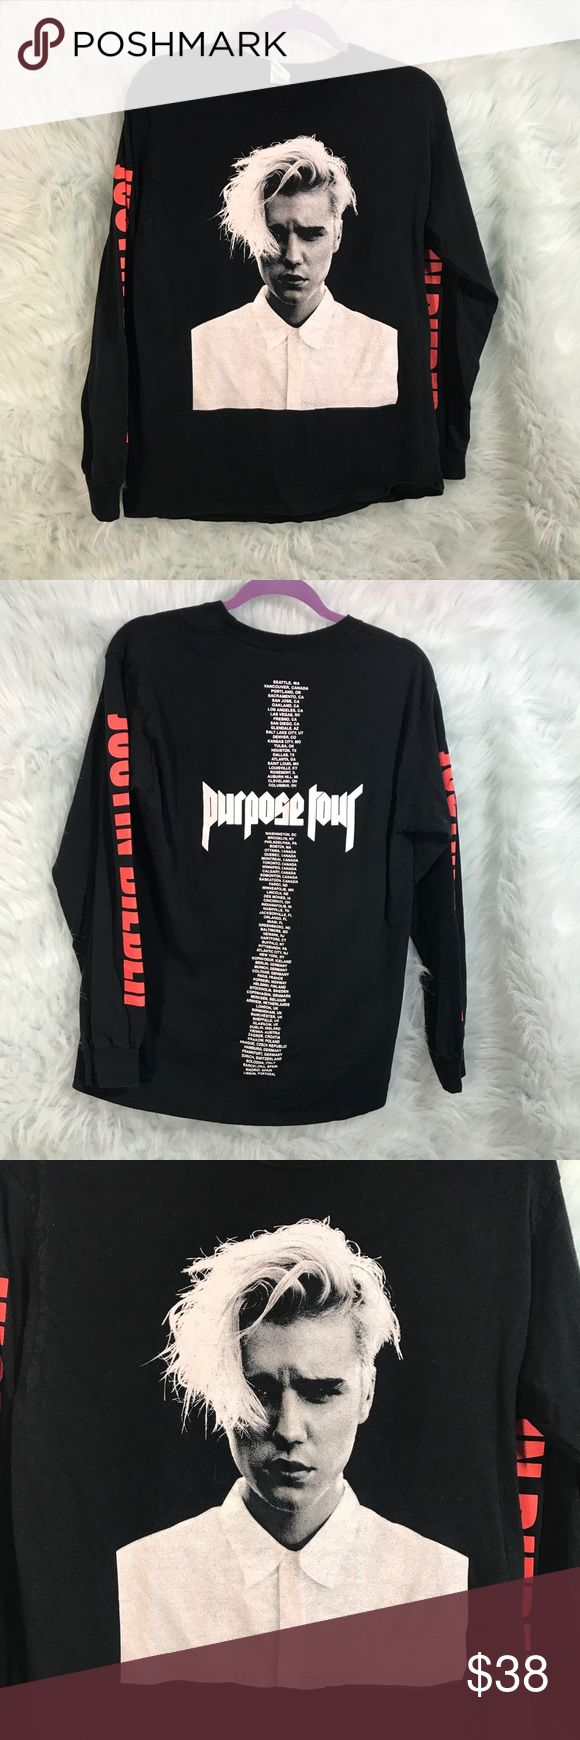 Justin Bieber Purpose Tour Long Sleeve Black Tee * Justin Bieber Purpose World Tour Long Sleeve Black T-Shirt w/ World Tour Dates Listed on Back * Size Medium * Made of 100% cotton.  * Pre-owned, but in excellent used condition. No holes, stains or pilling.  * Measurements: Underarm to underarm is 19 inches. Length is 27 inches. Justin Bieber Tops Tees - Long Sleeve